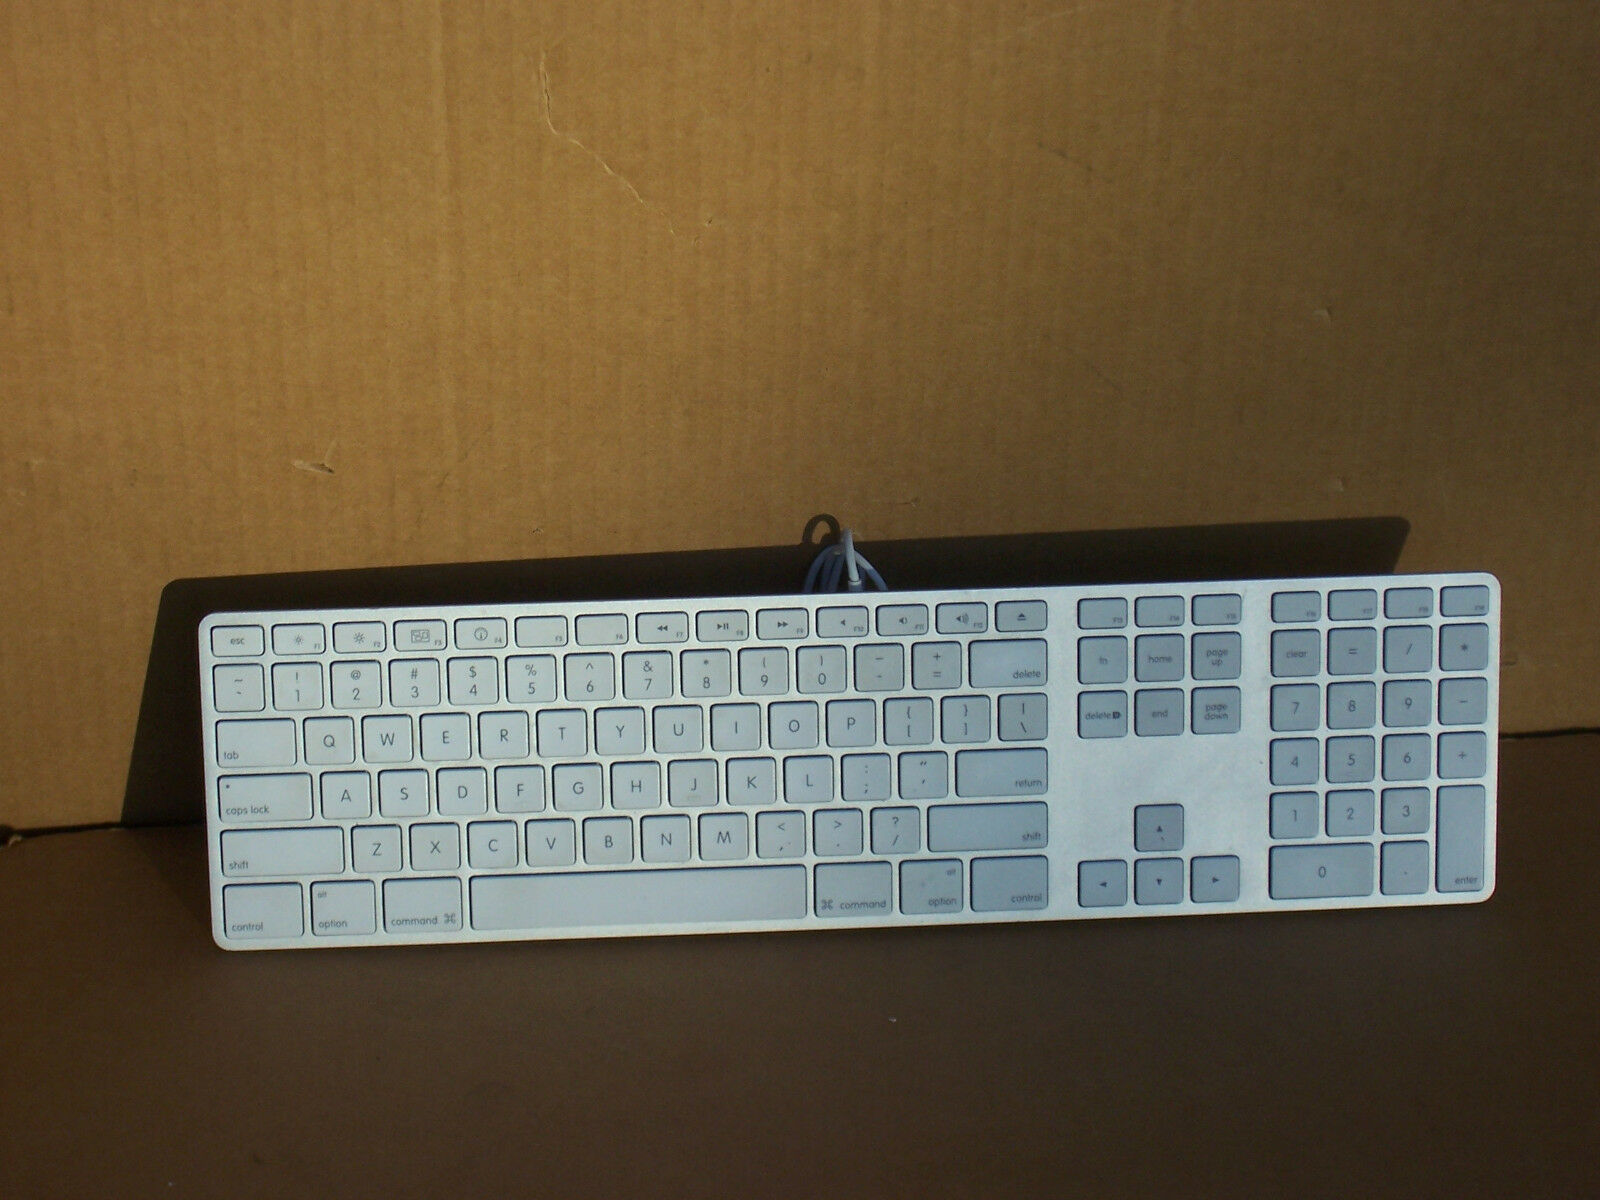 Apple A1243 Ultra Thin Aluminum USB Wired Keyboard With Numeric ...